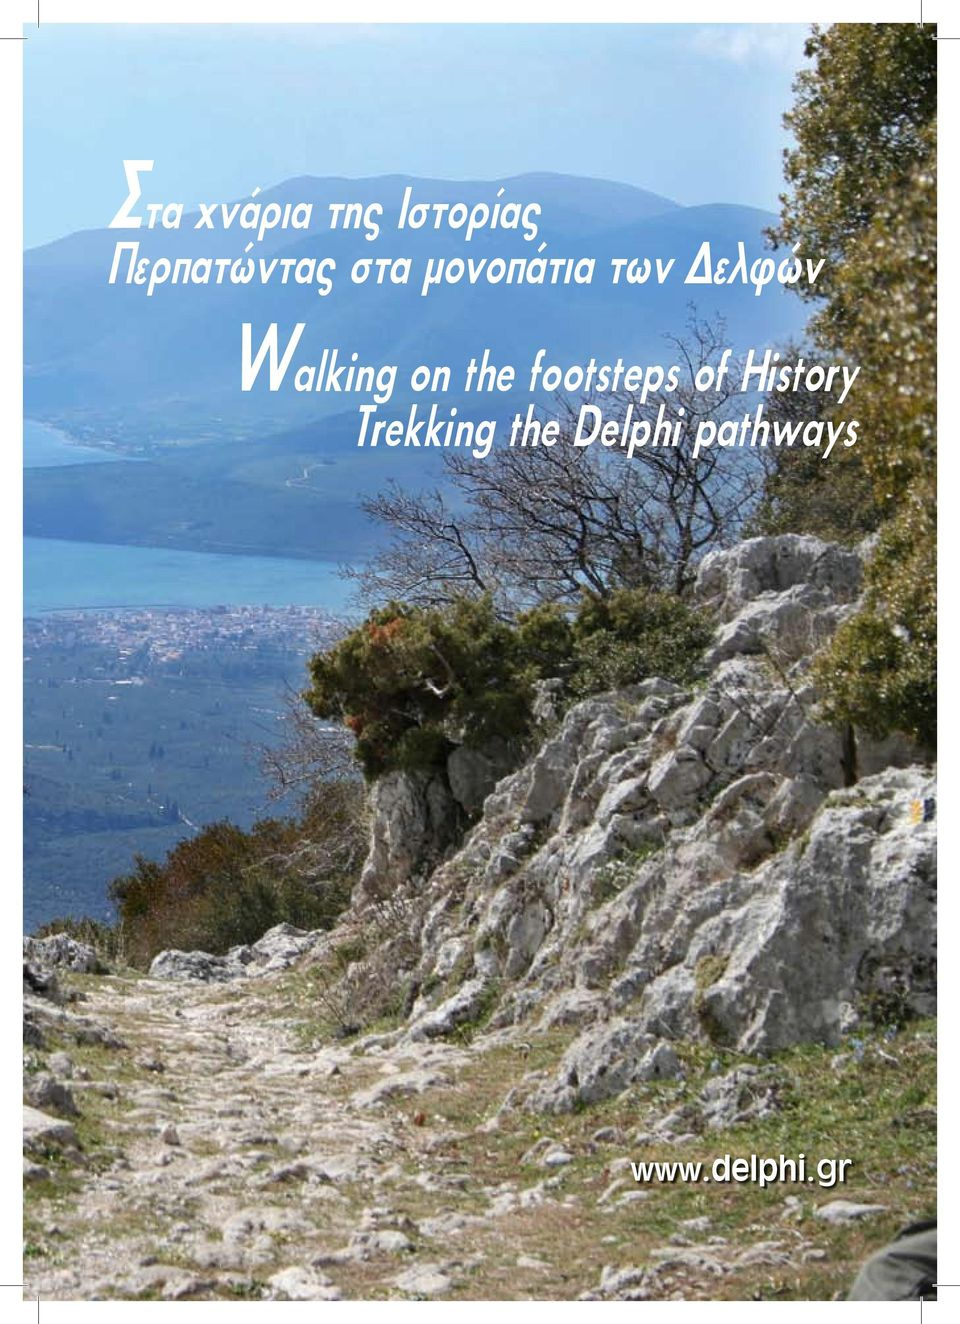 Δελφών Walking on the footsteps of